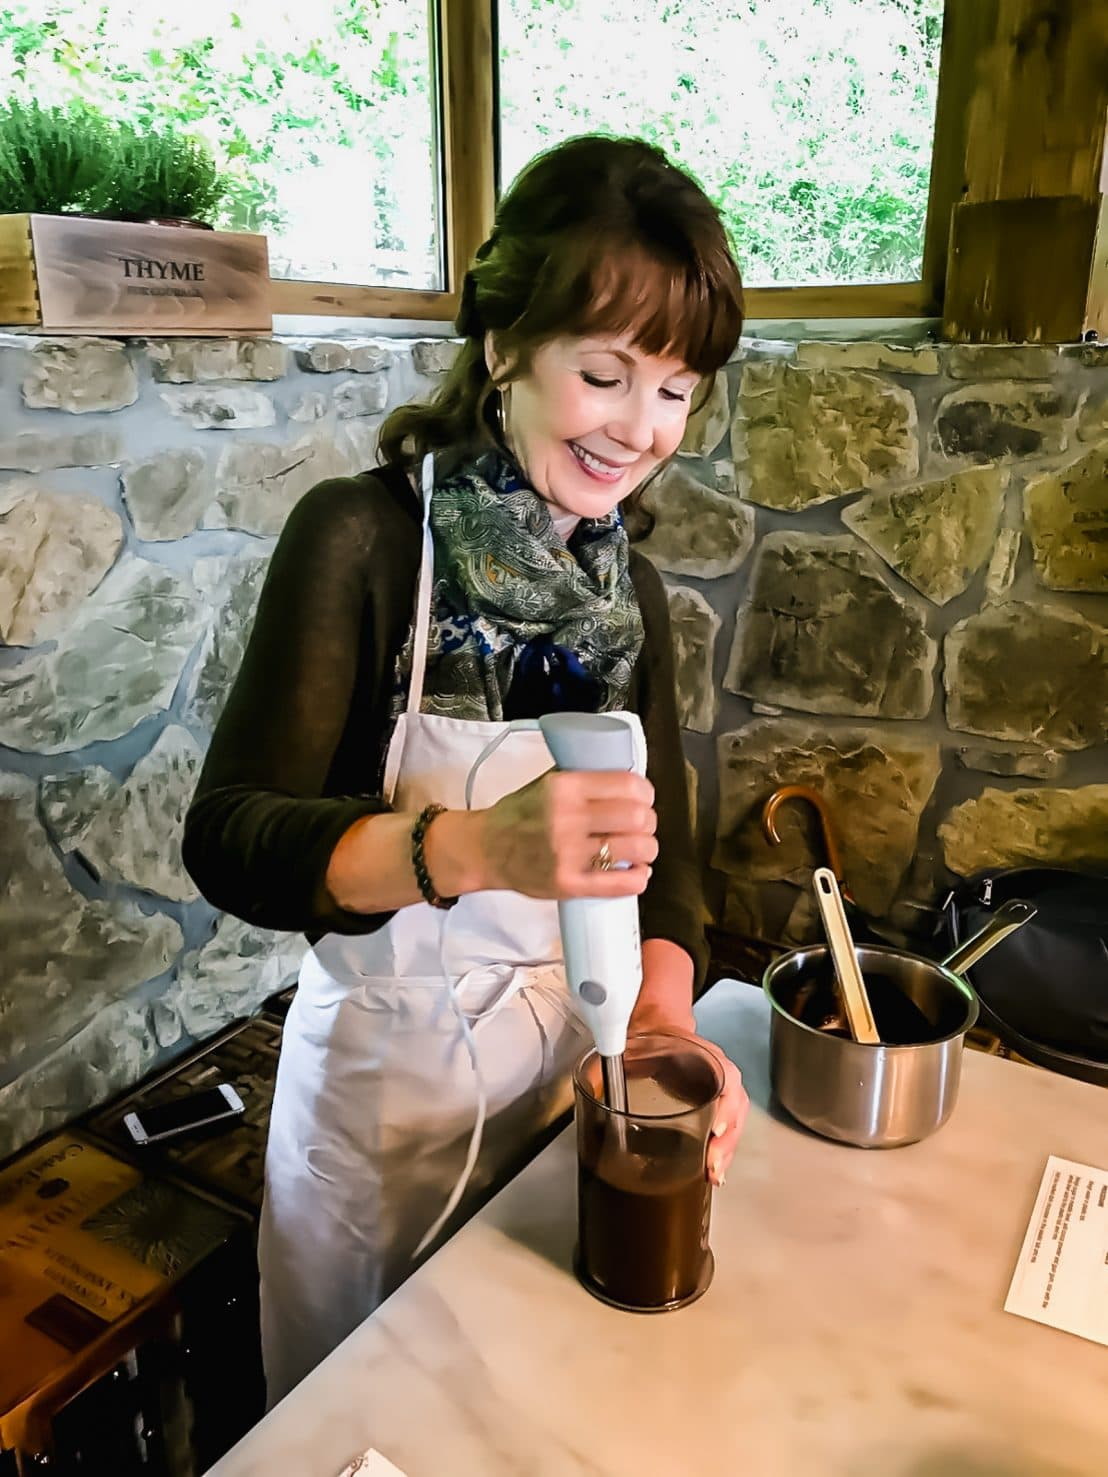 A woman making gelato and mixing with an immersion blender.